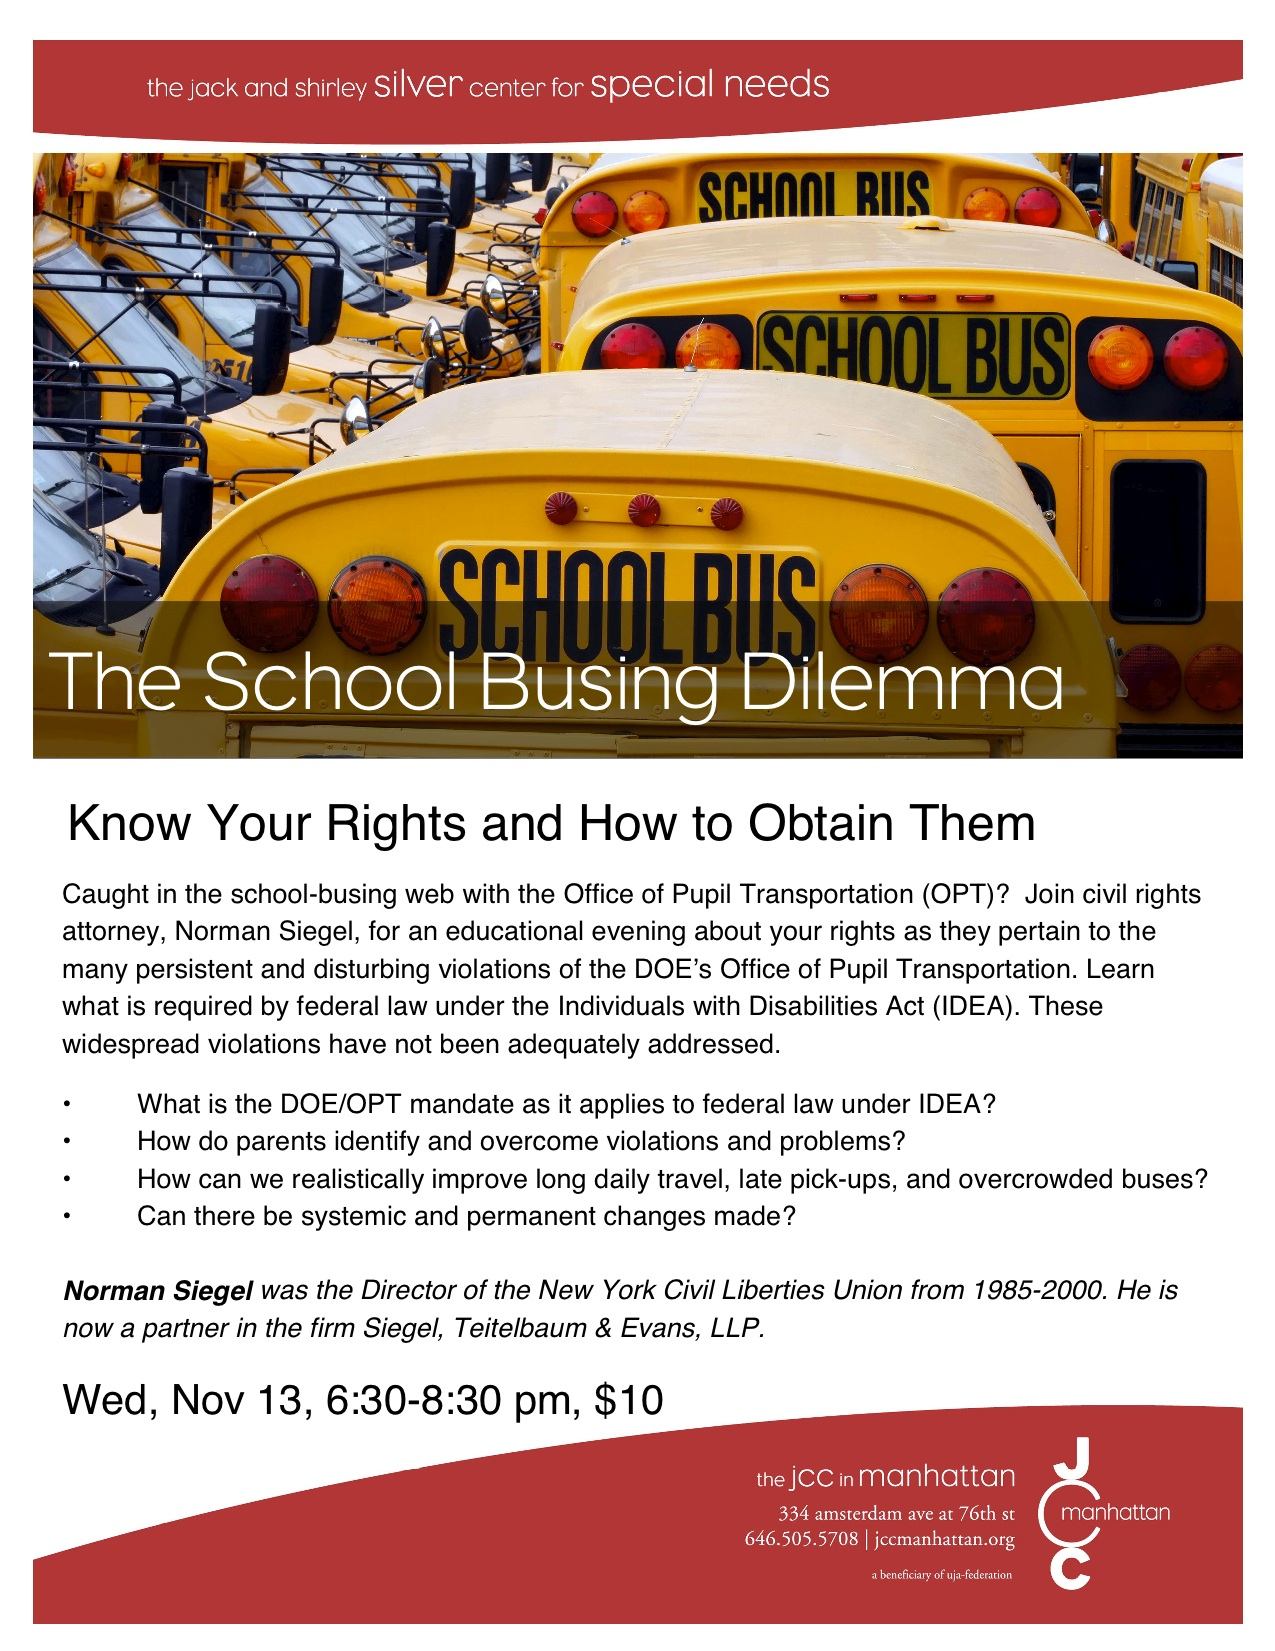 Busing Dilemma, Nov 13th